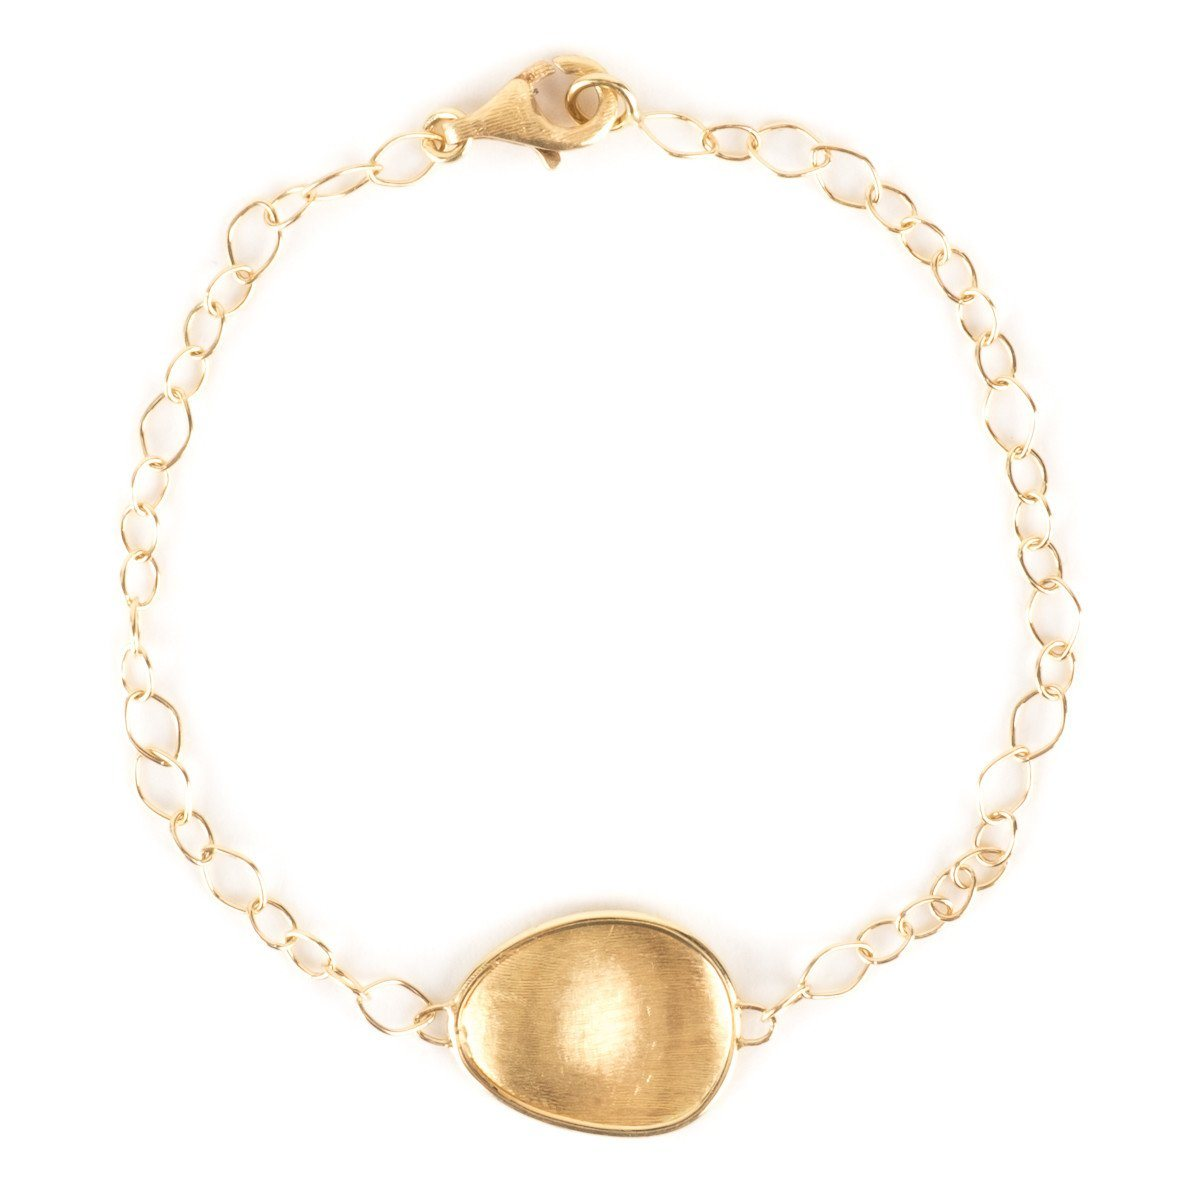 Marco Bicego Textured Gold Lunaria Collection Petal Bracelet